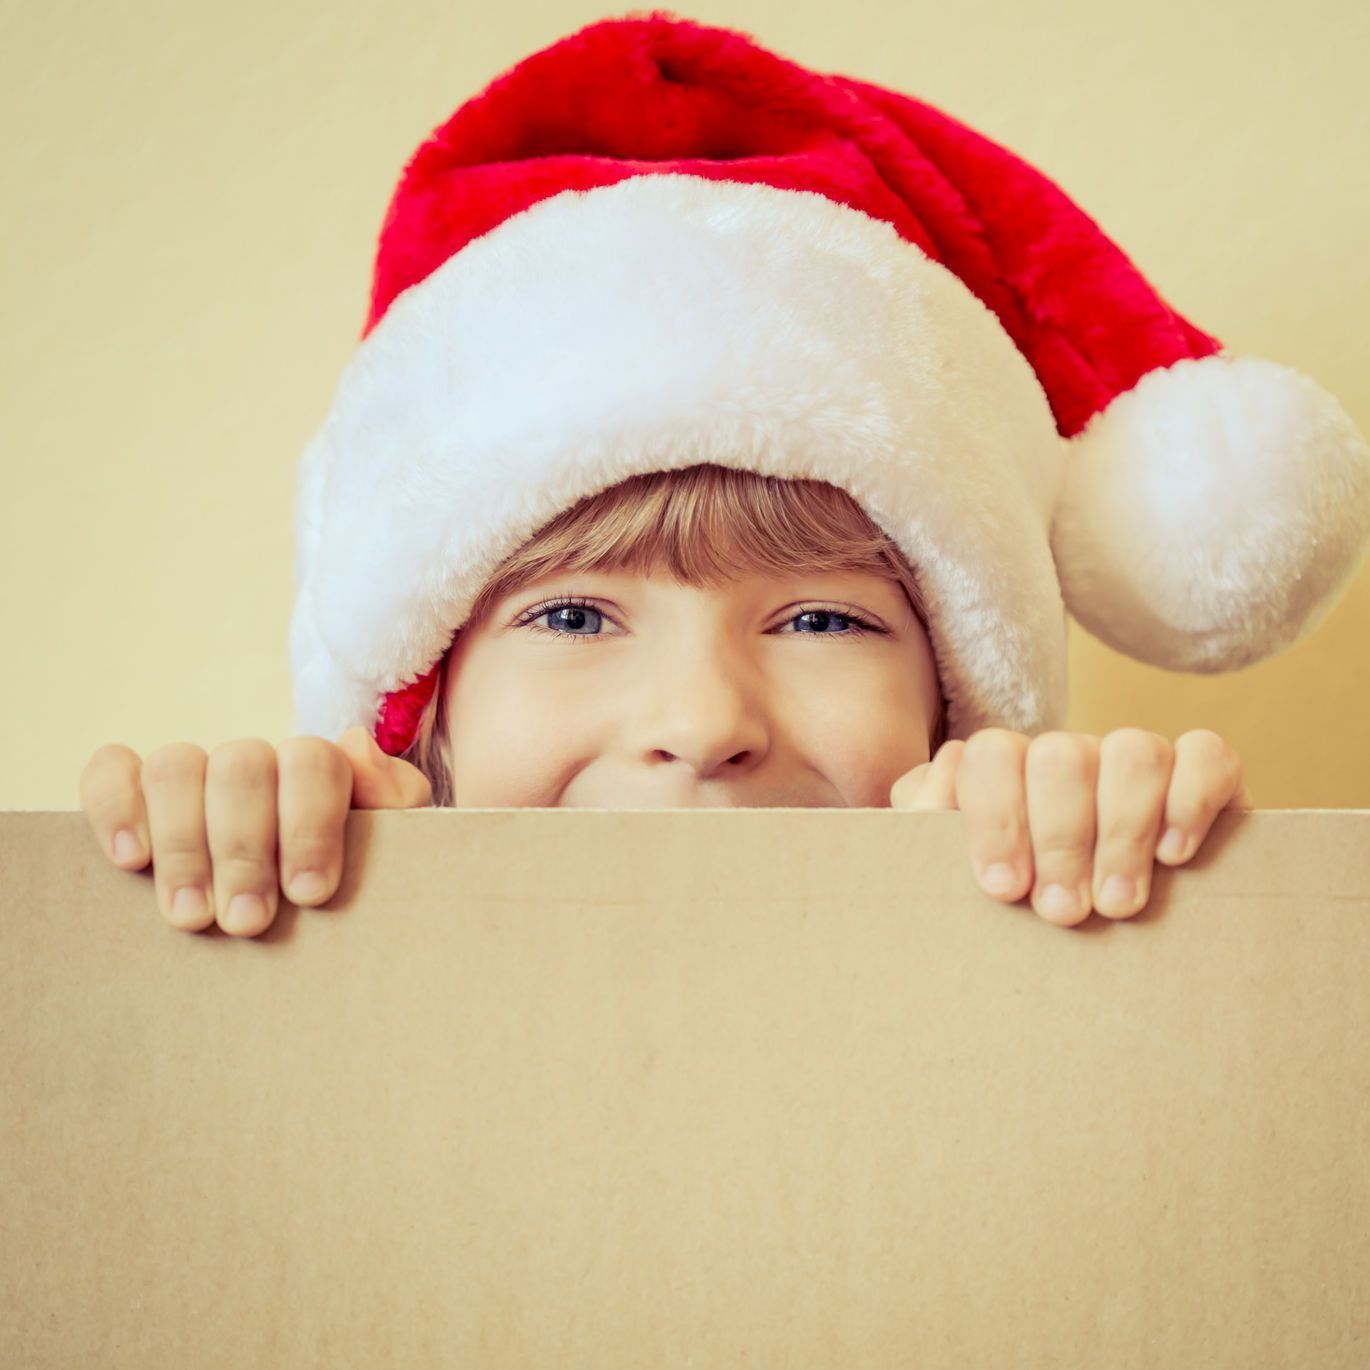 The Santa Dilemma: When Older Siblings Know The Truth